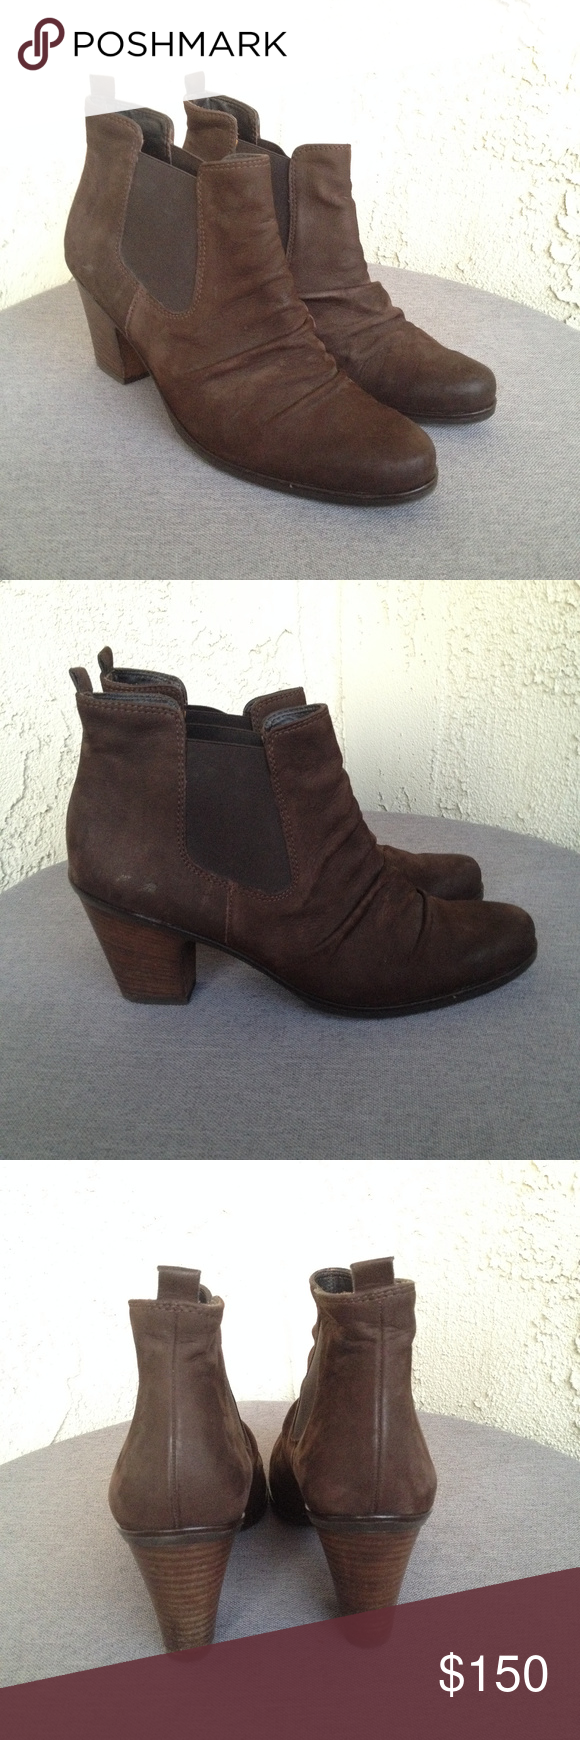 separation shoes 74d40 e6b0f Paul Green Shoes | Paul Green Jano Brown Suede Leather Ankle ...